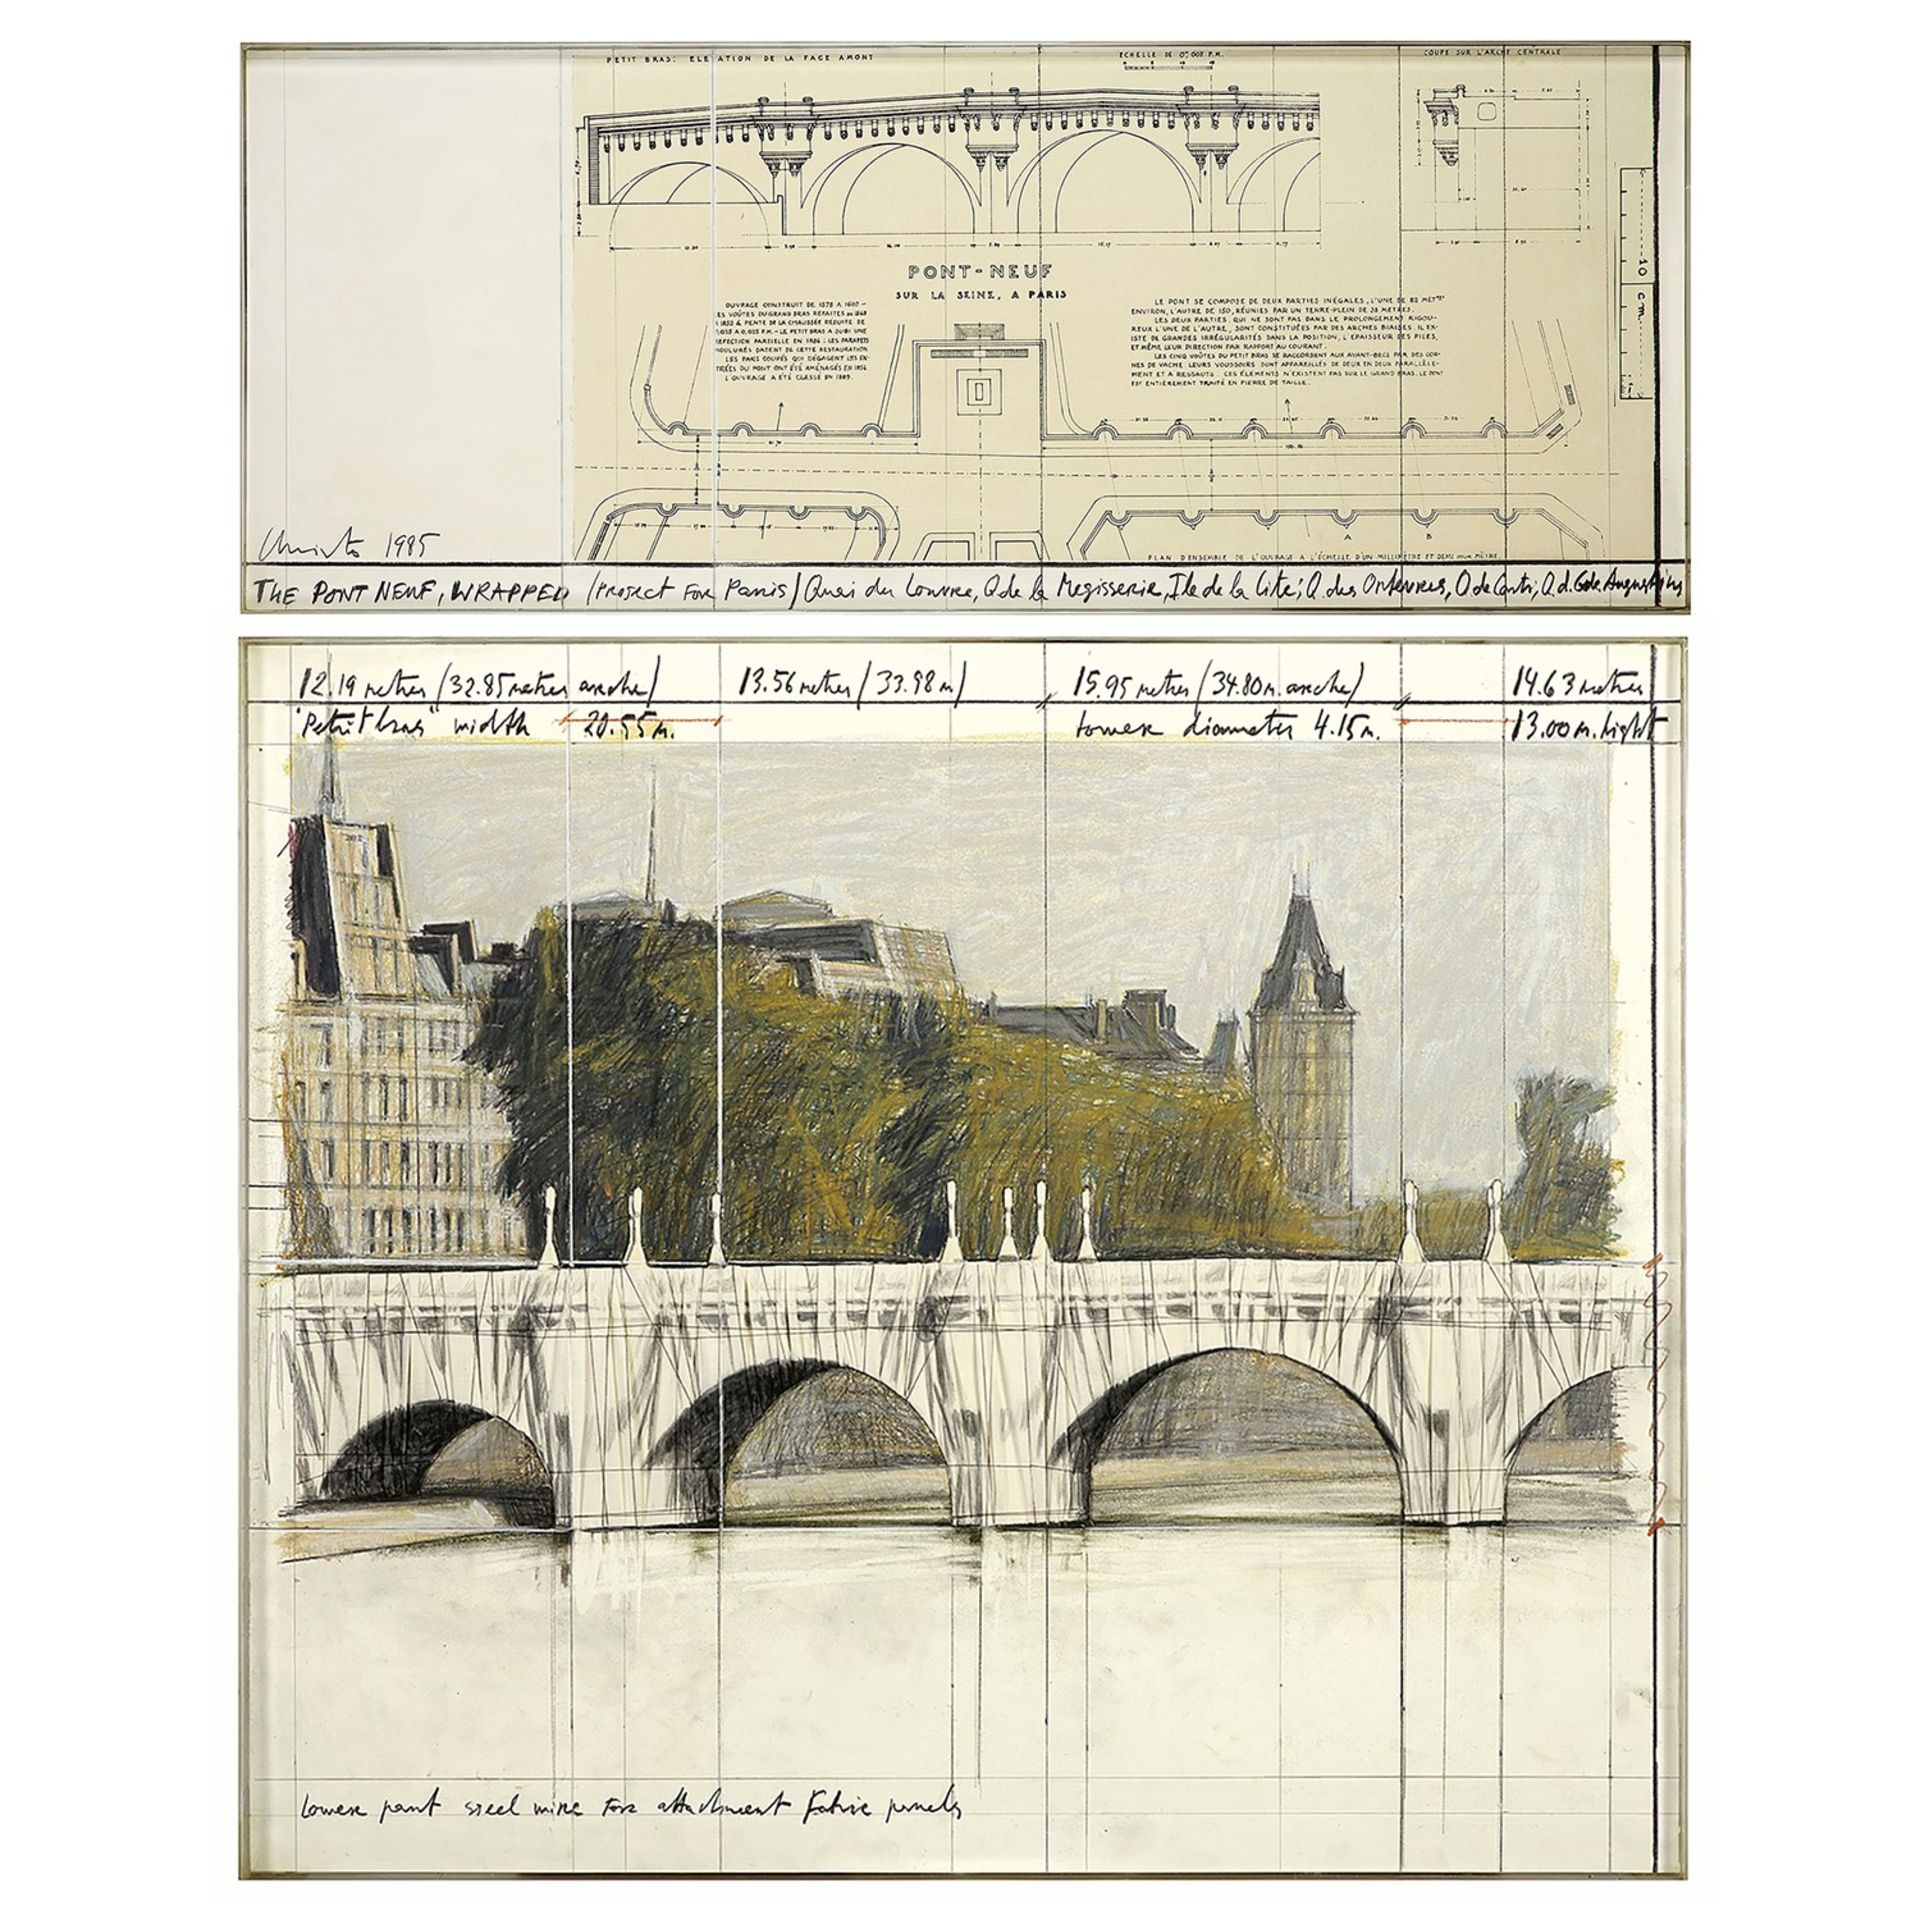 CHRISTO (1935-2020) et JEANNE-CLAUDE (1935-2008) - The Pont Neuf, Wrapped (Project [...] - Image 3 of 5